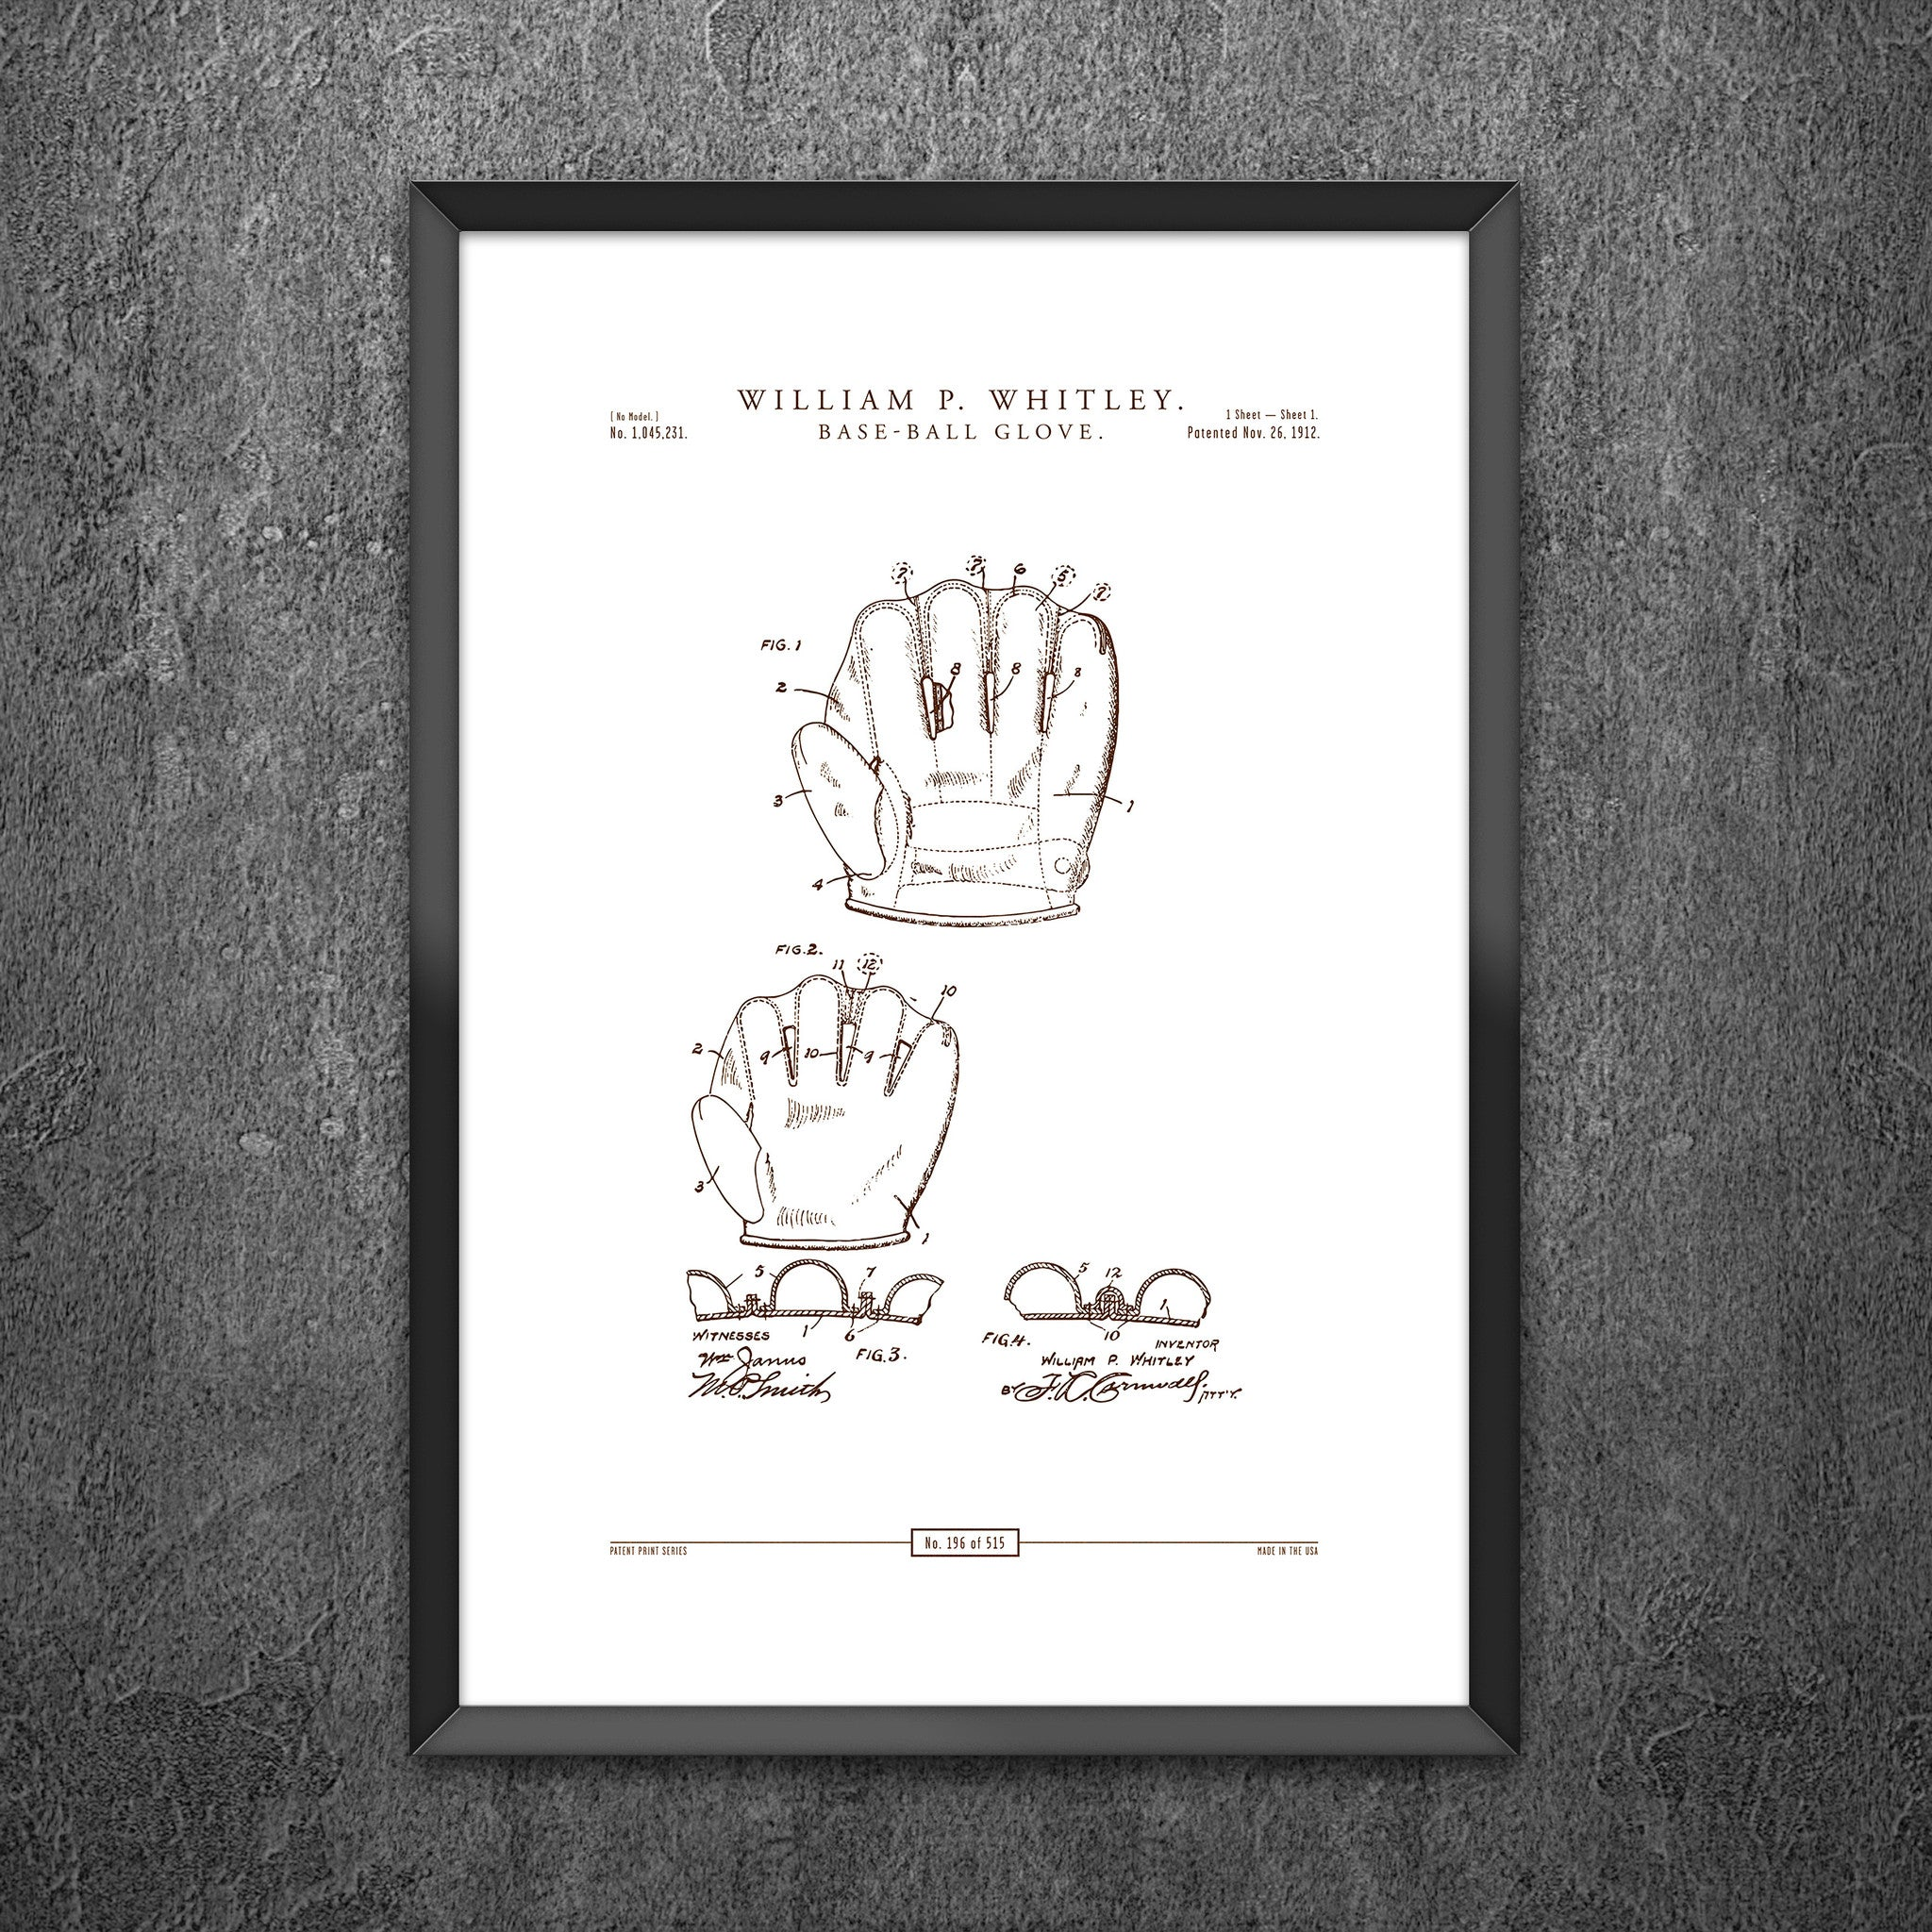 No 196 - Baseball Glove